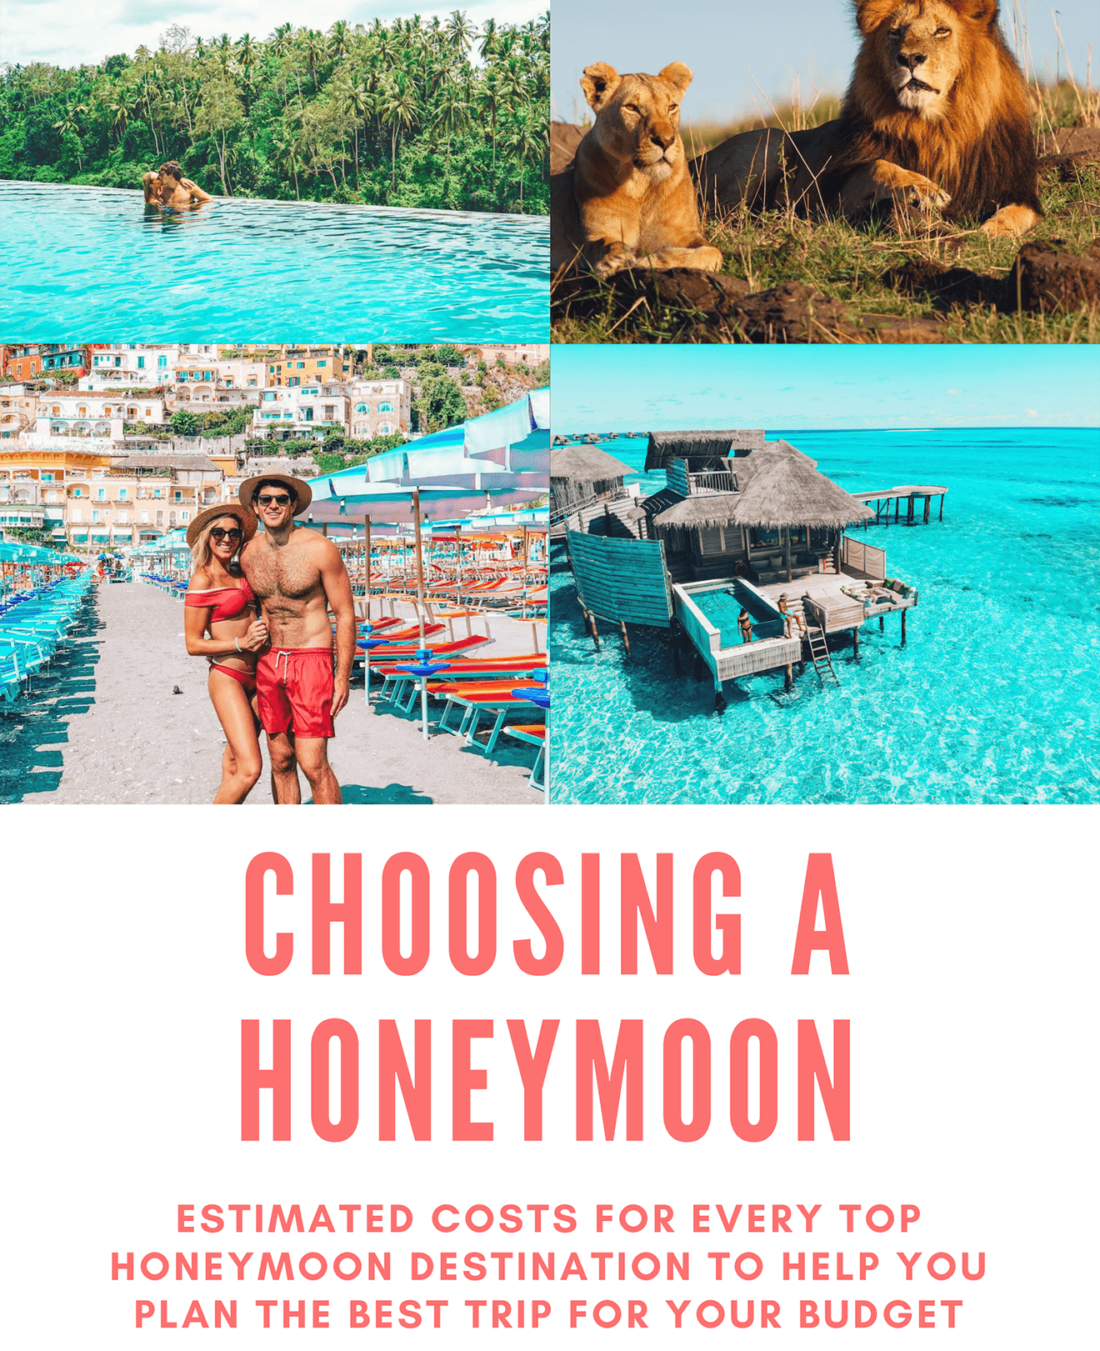 Best Honeymoon Destinations 2019 How to Choose a Honeymoon Destination By Budget: What you can